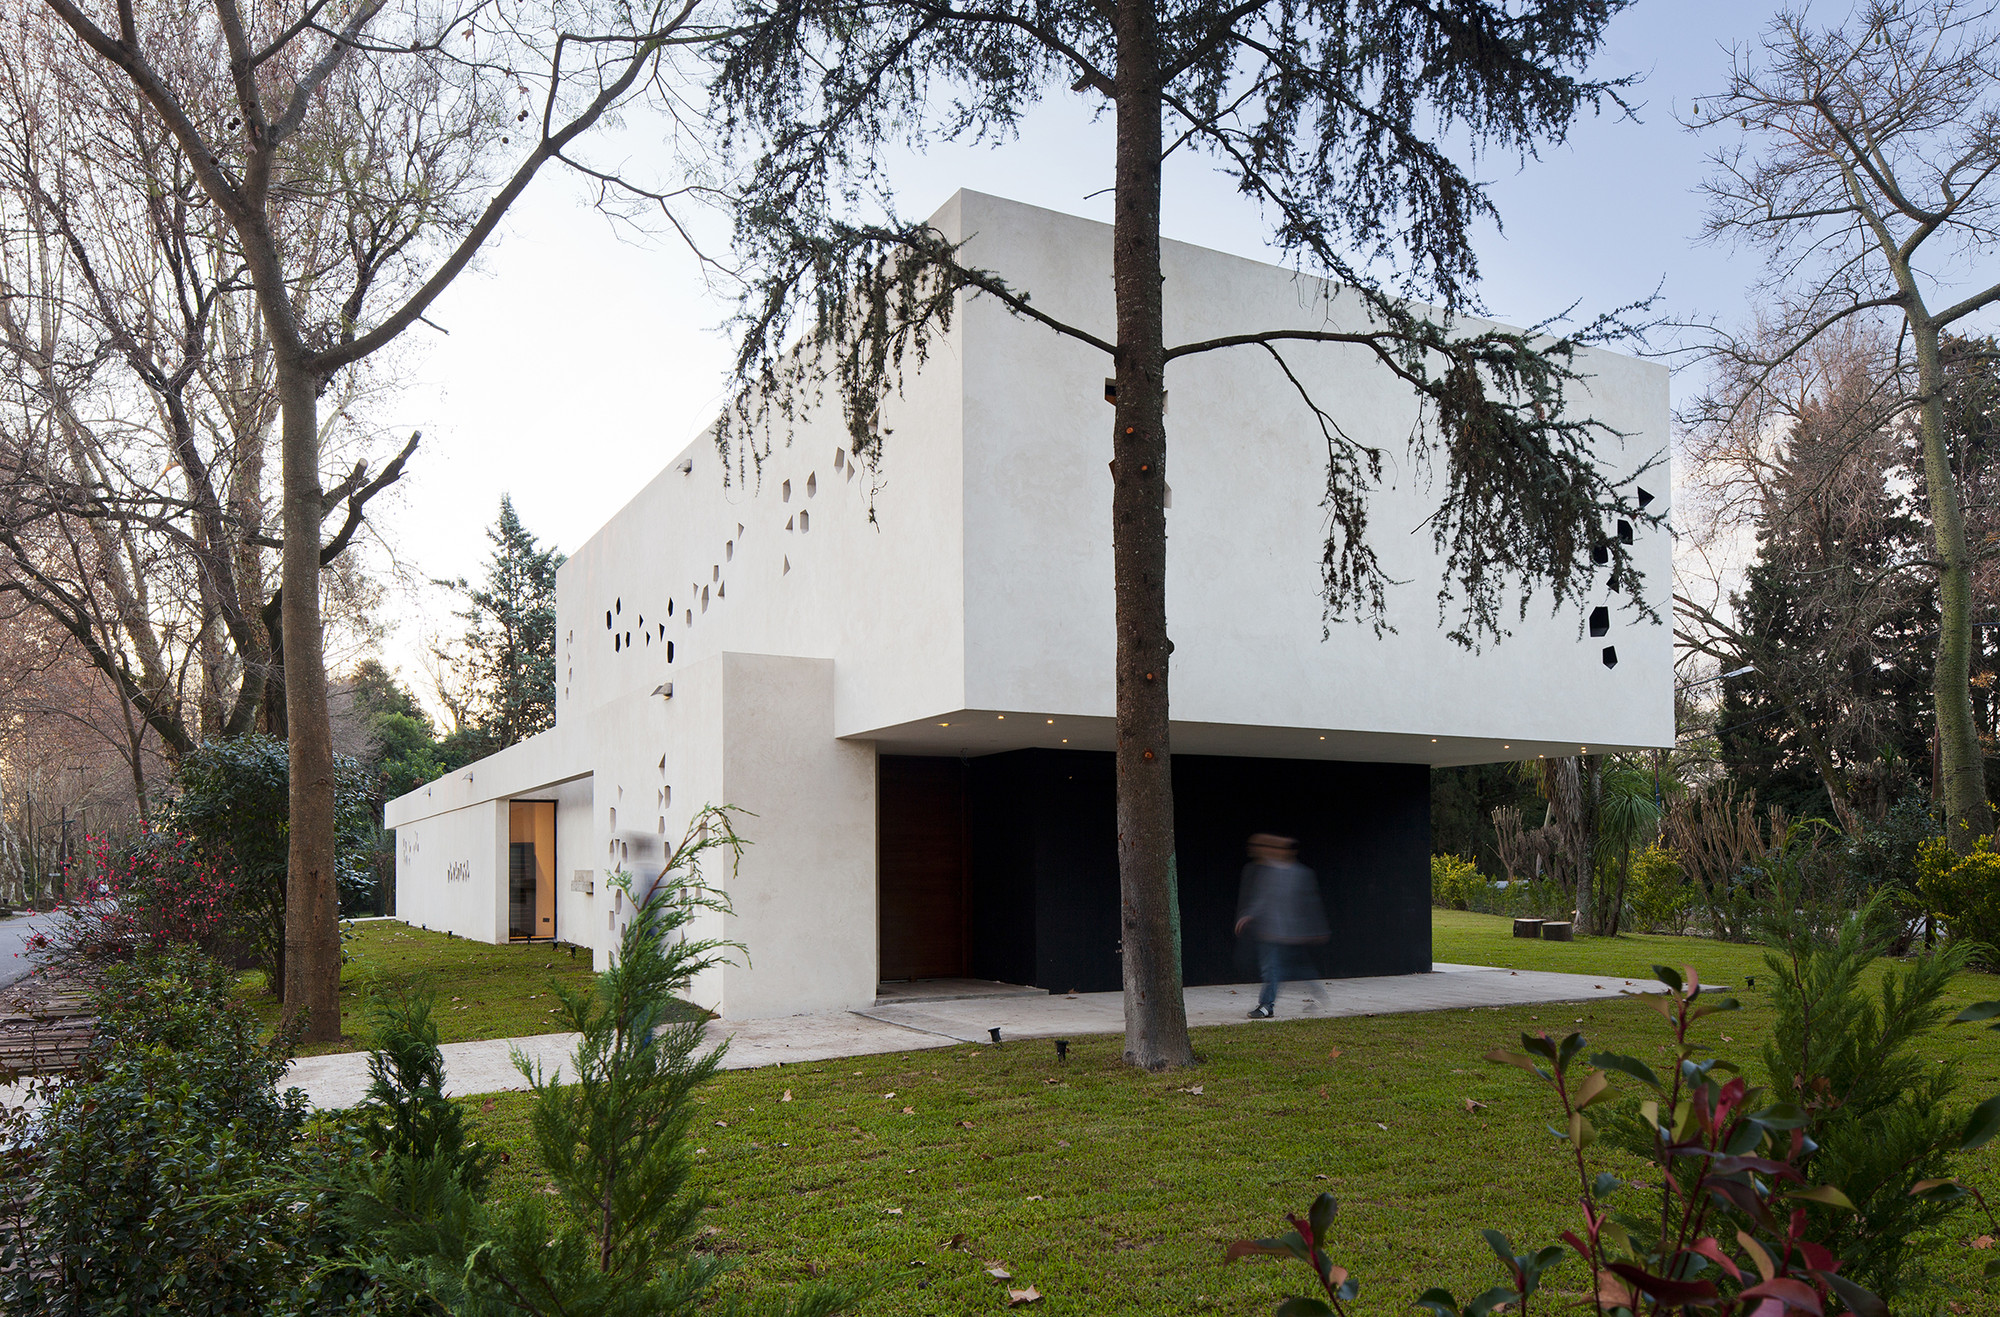 Casa BLLTT / Enrique Barberis